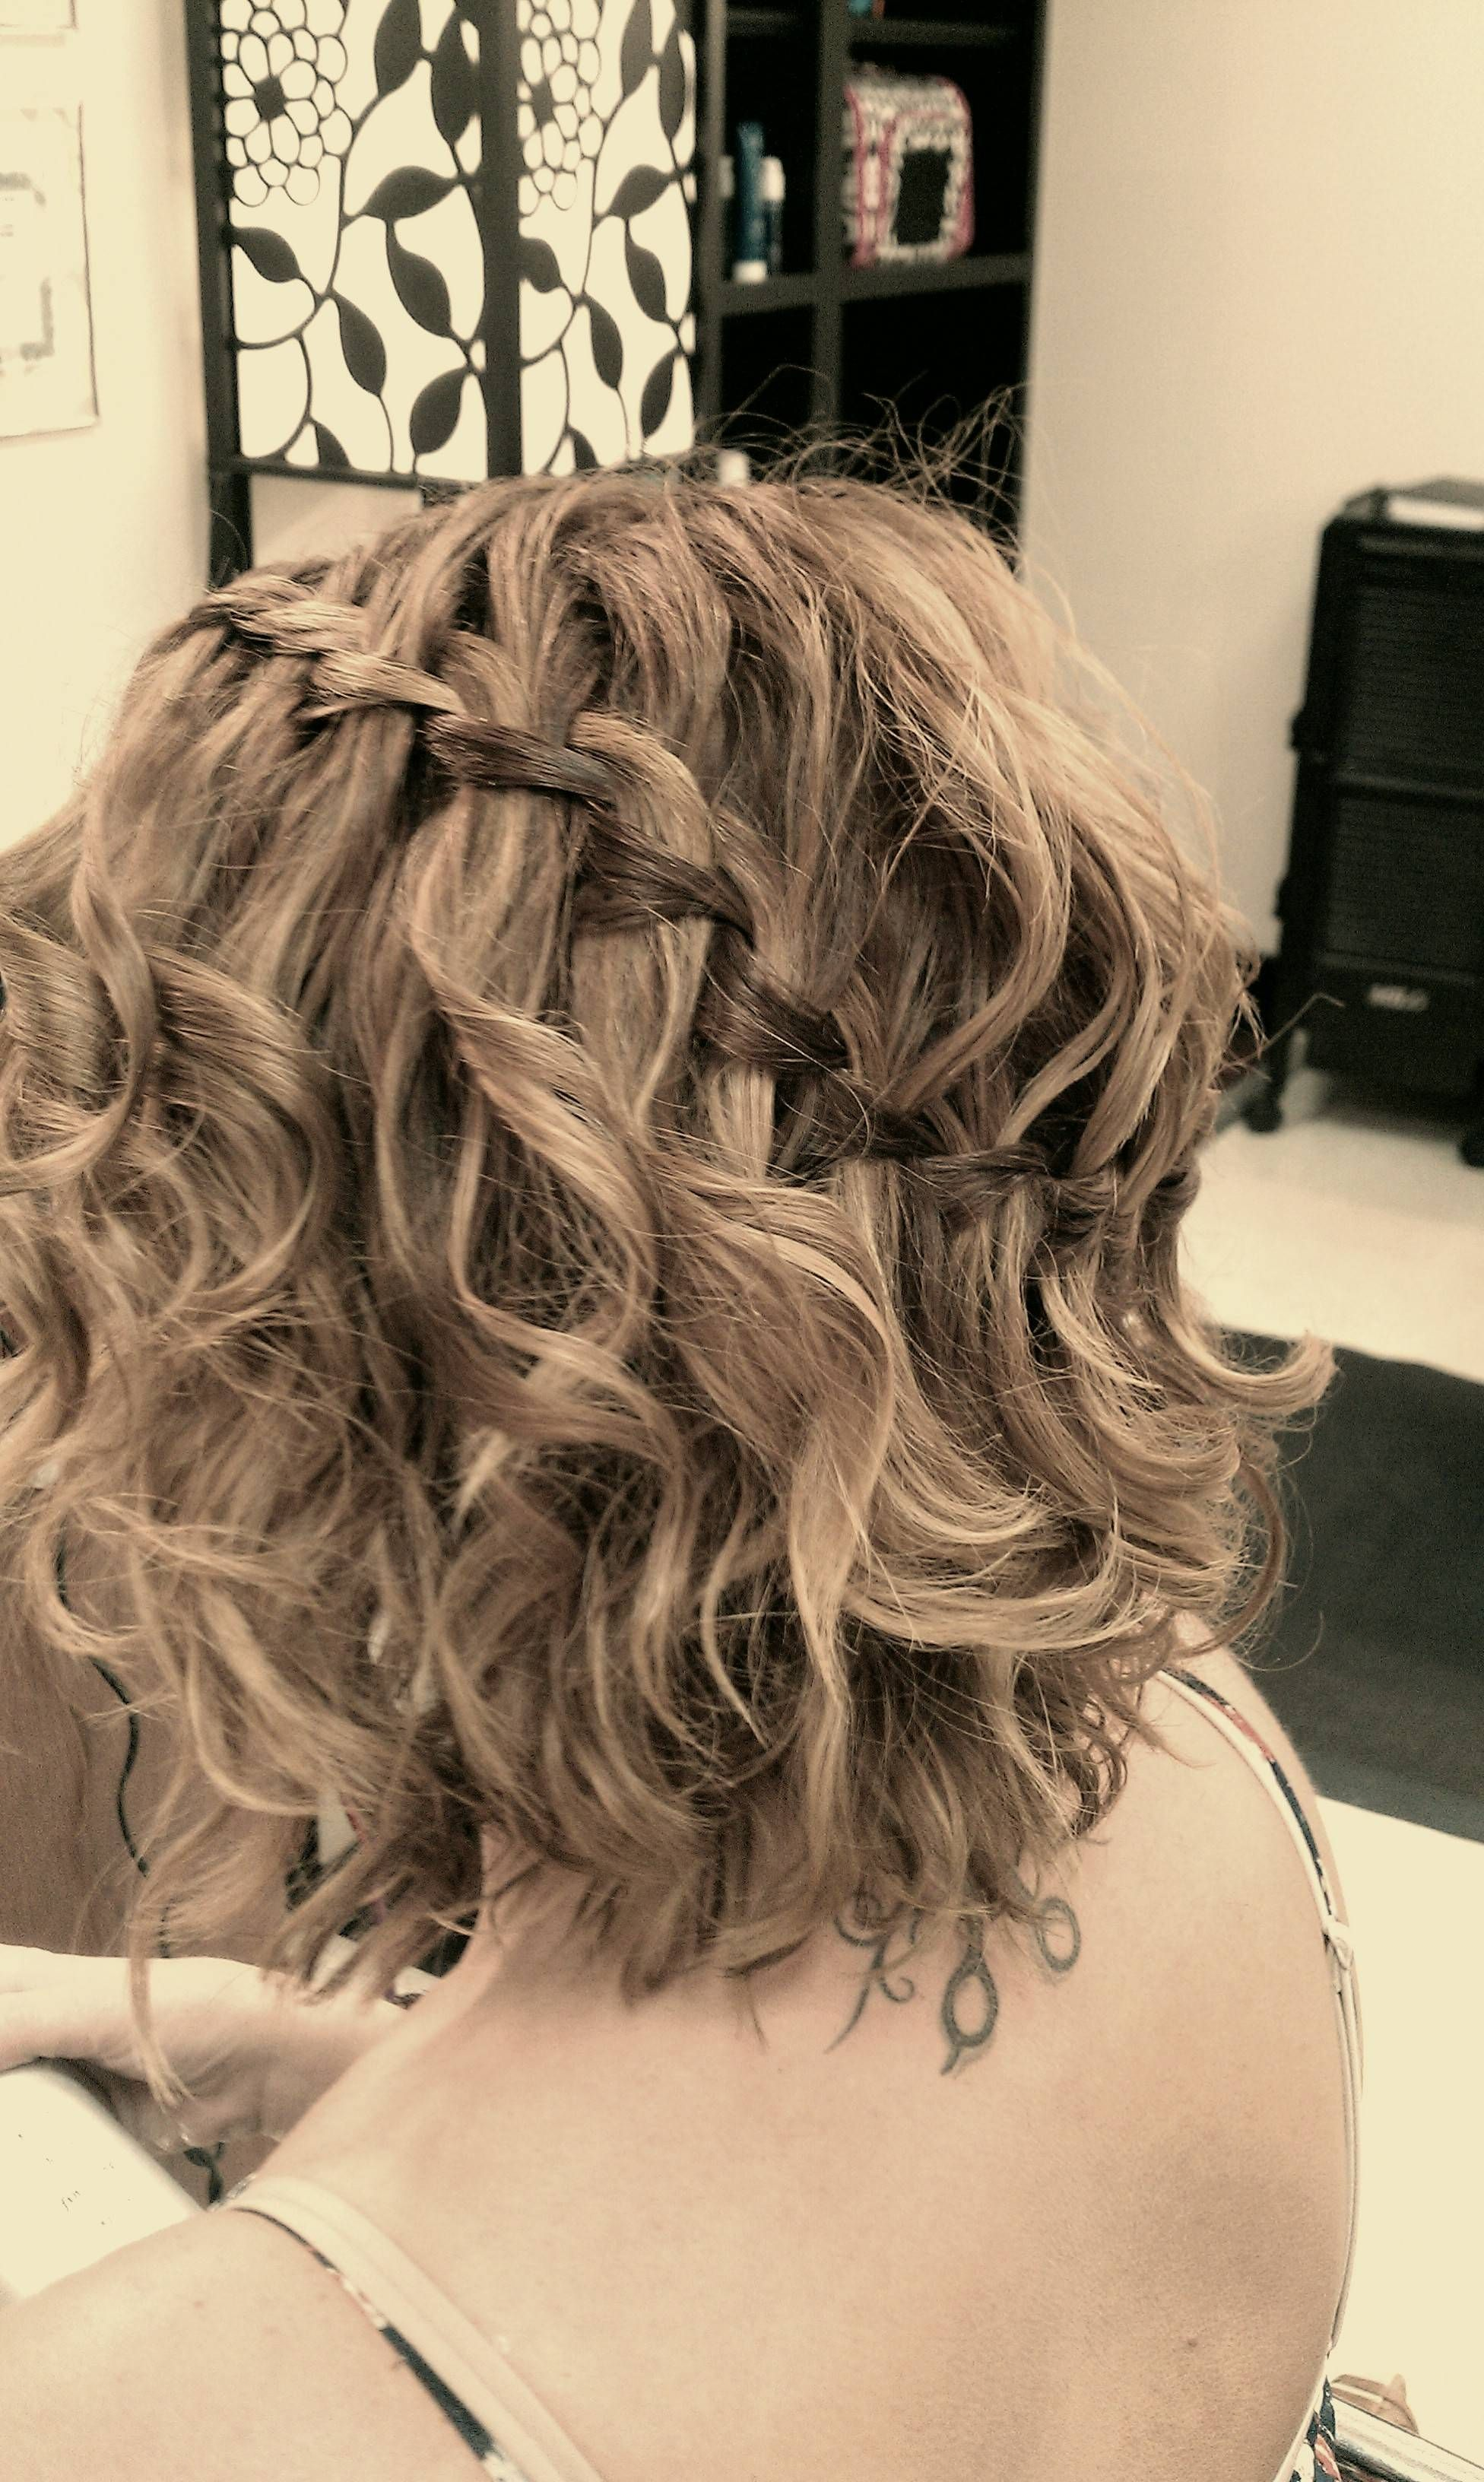 Waterfall Braid Short Hair Soooo Want To Try This With My Hair Scrunched Short Wedding Hair Cute Hairstyles For Short Hair Curly Braided Hairstyles